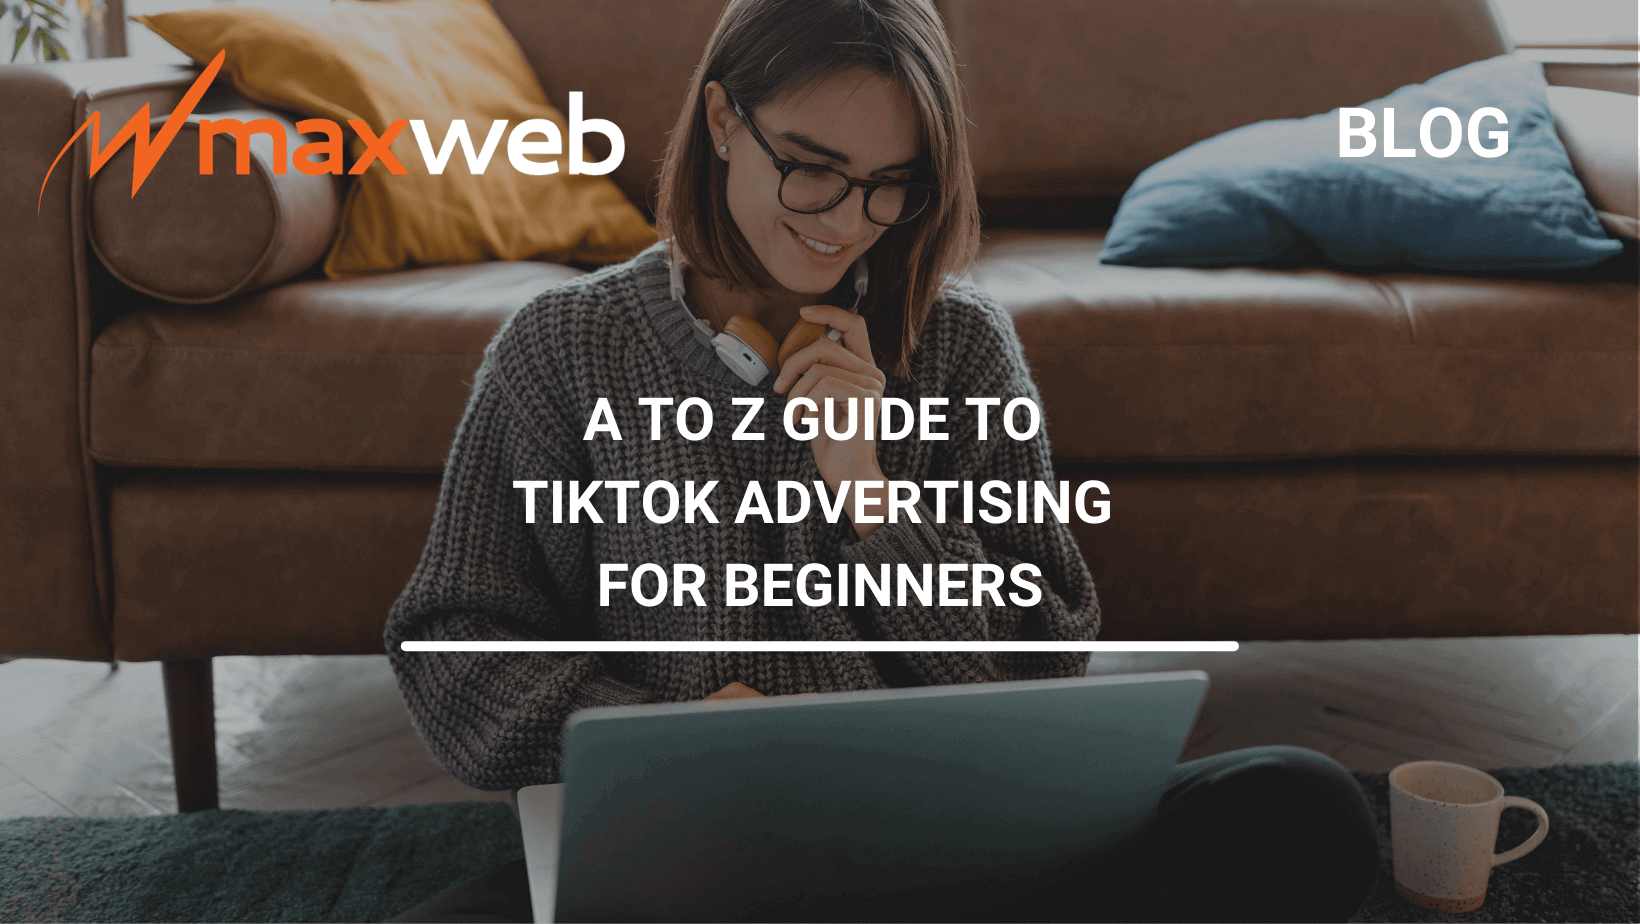 A to Z Guide to TikTok Advertising For Beginners